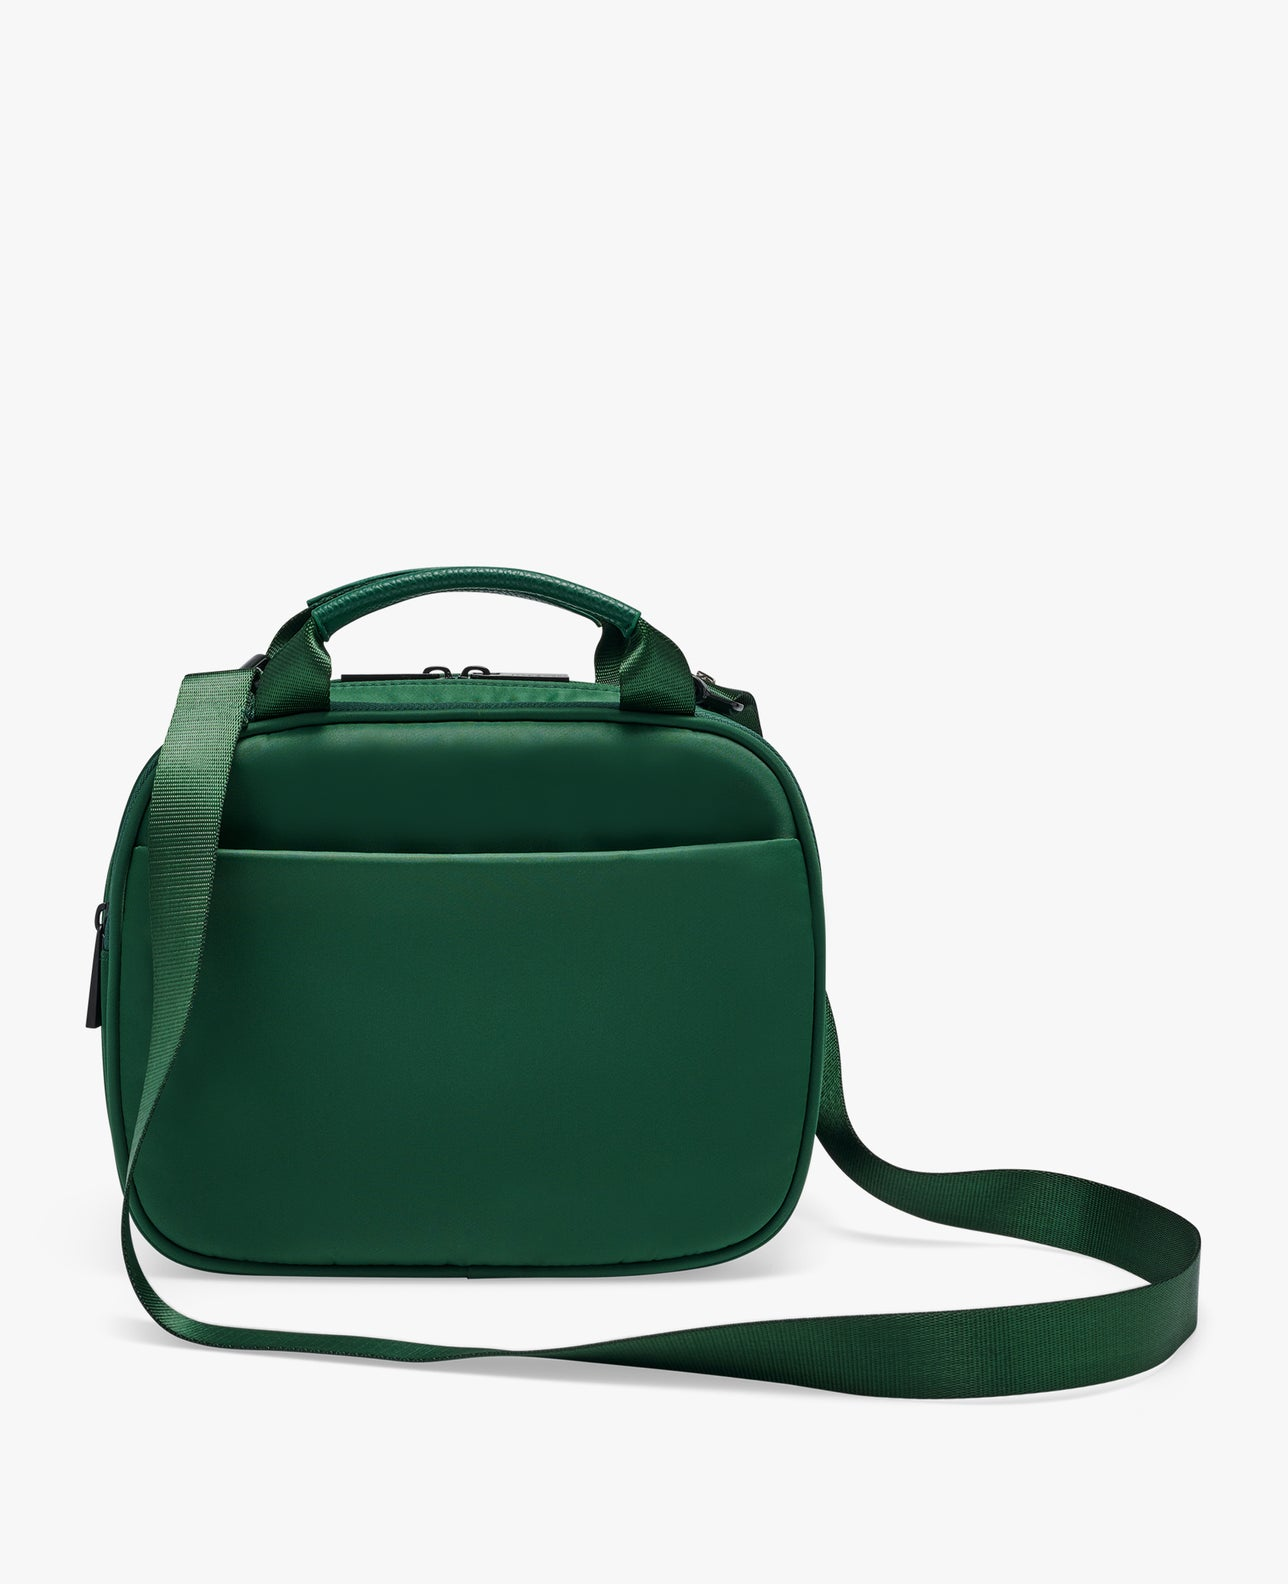 color:forest green nylon